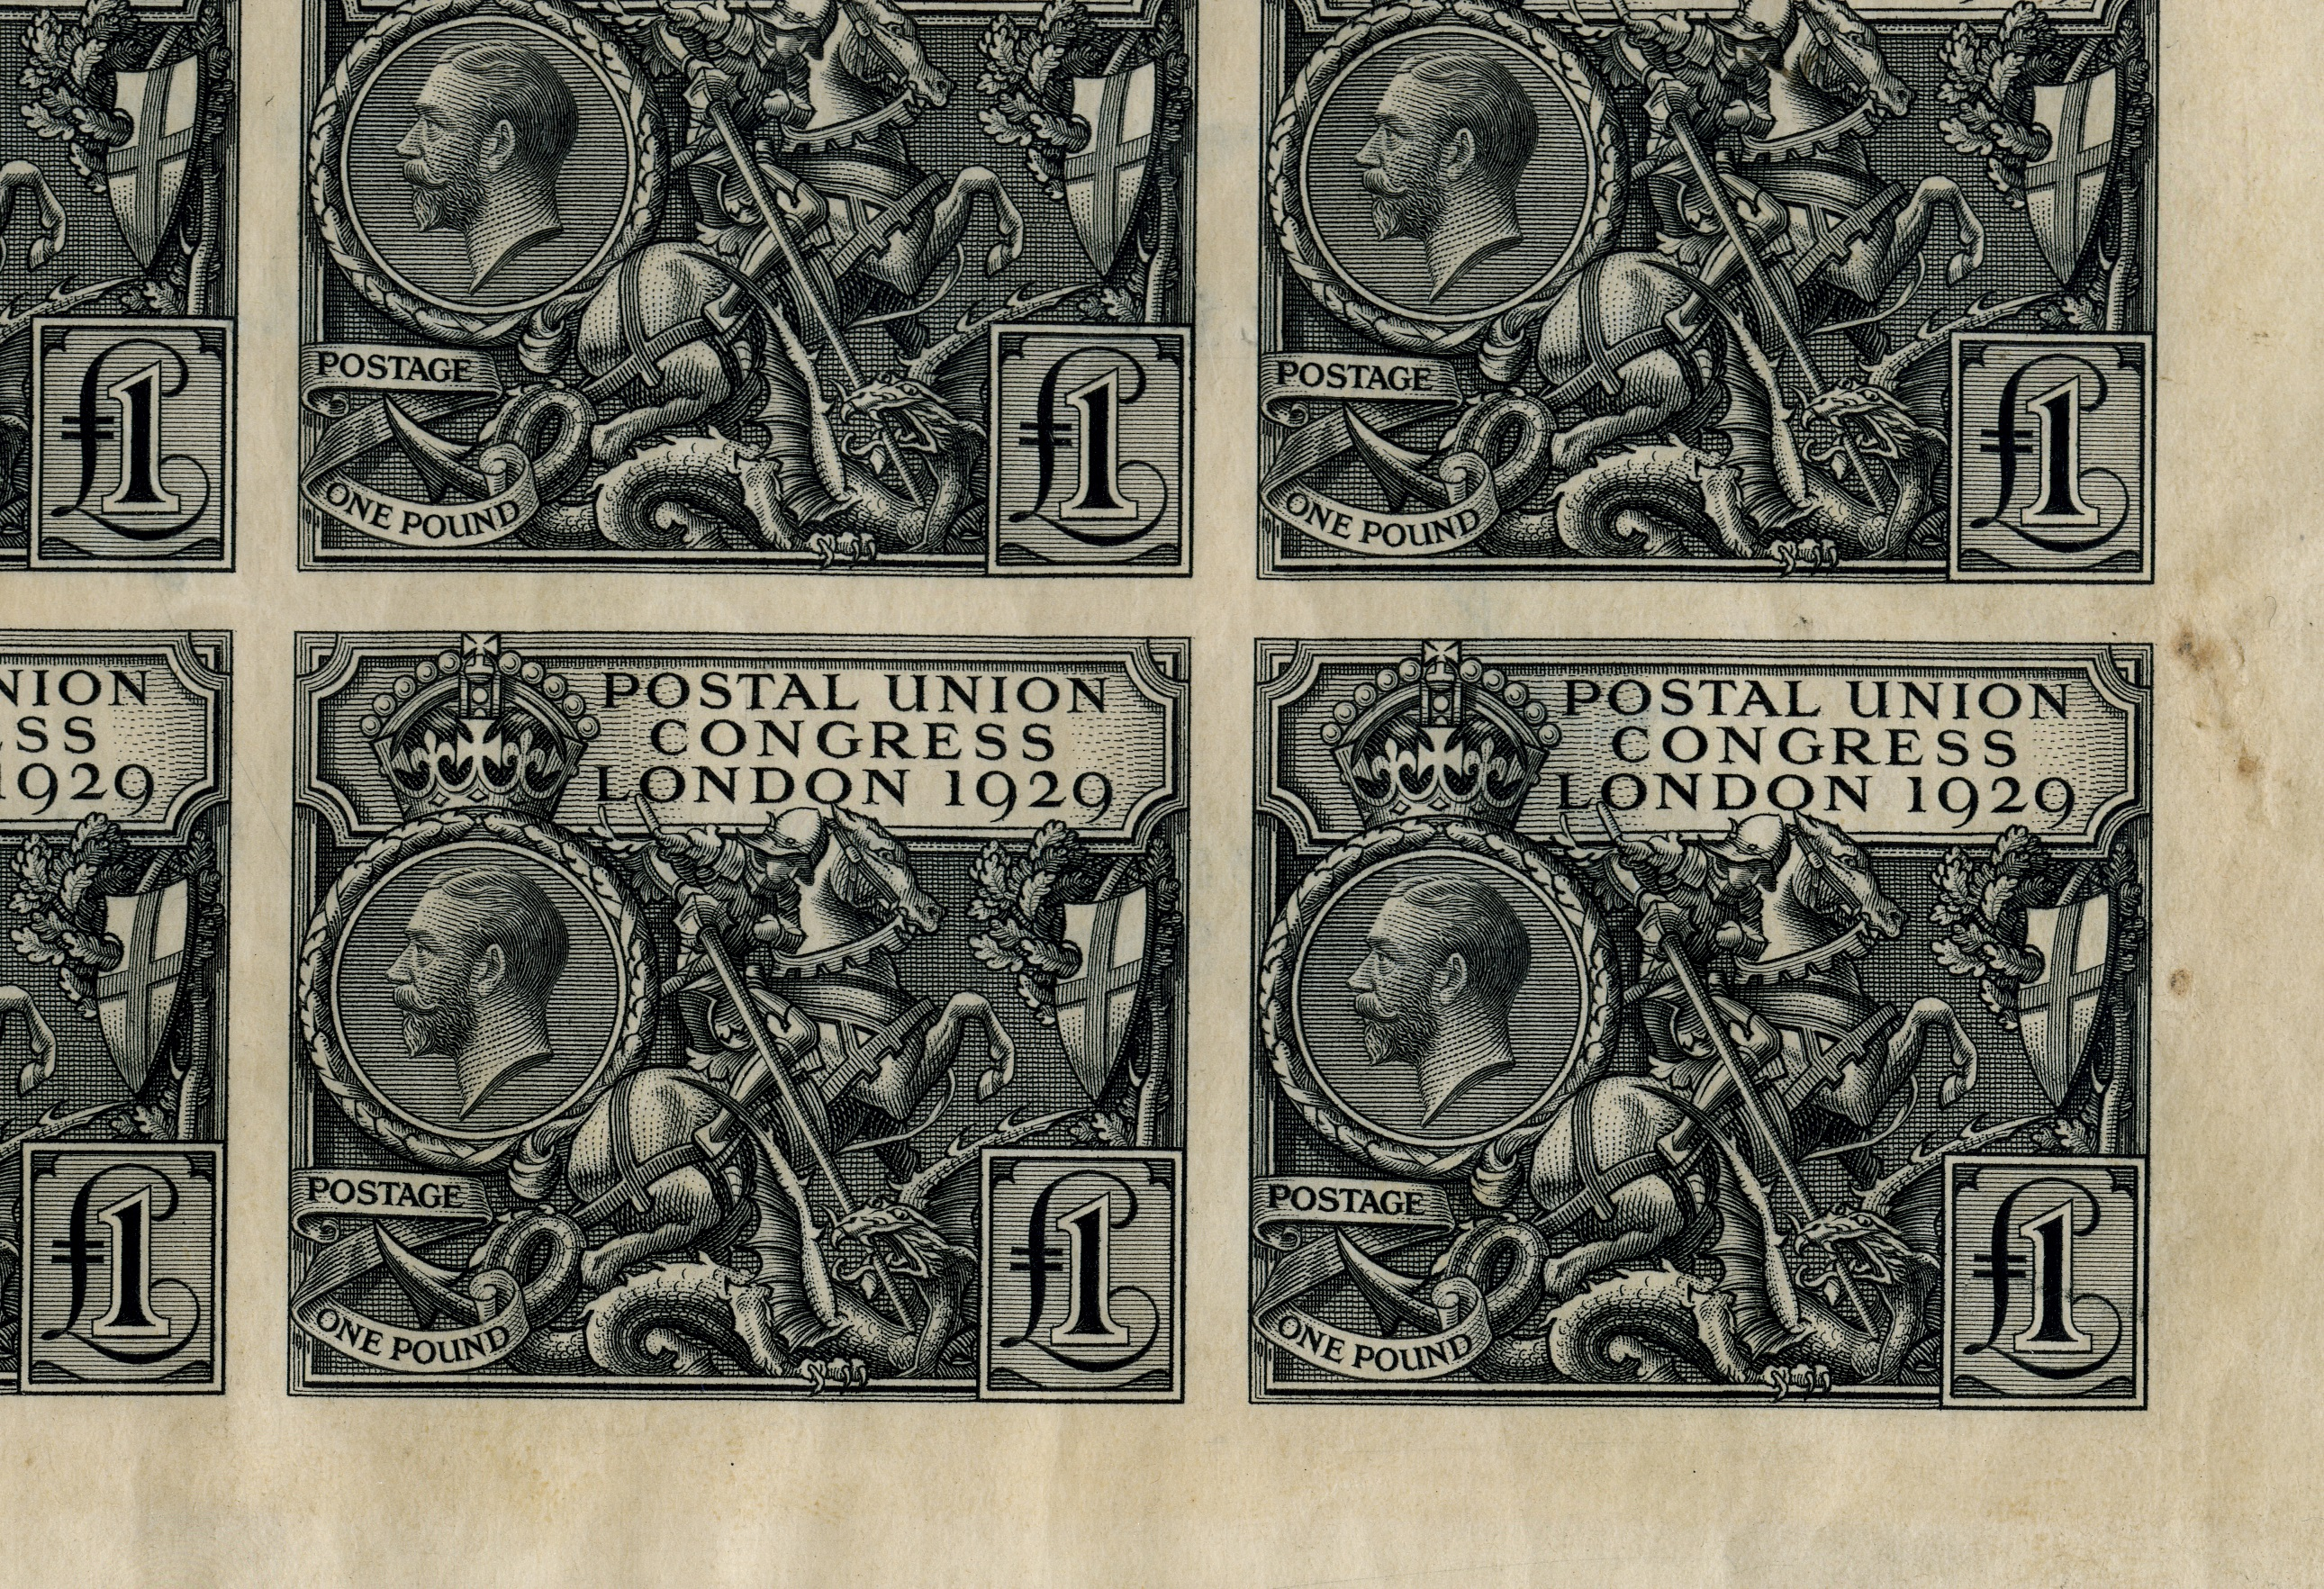 The corner of a sheet of £1 stamps of King George V with an image of St George and the Dragon